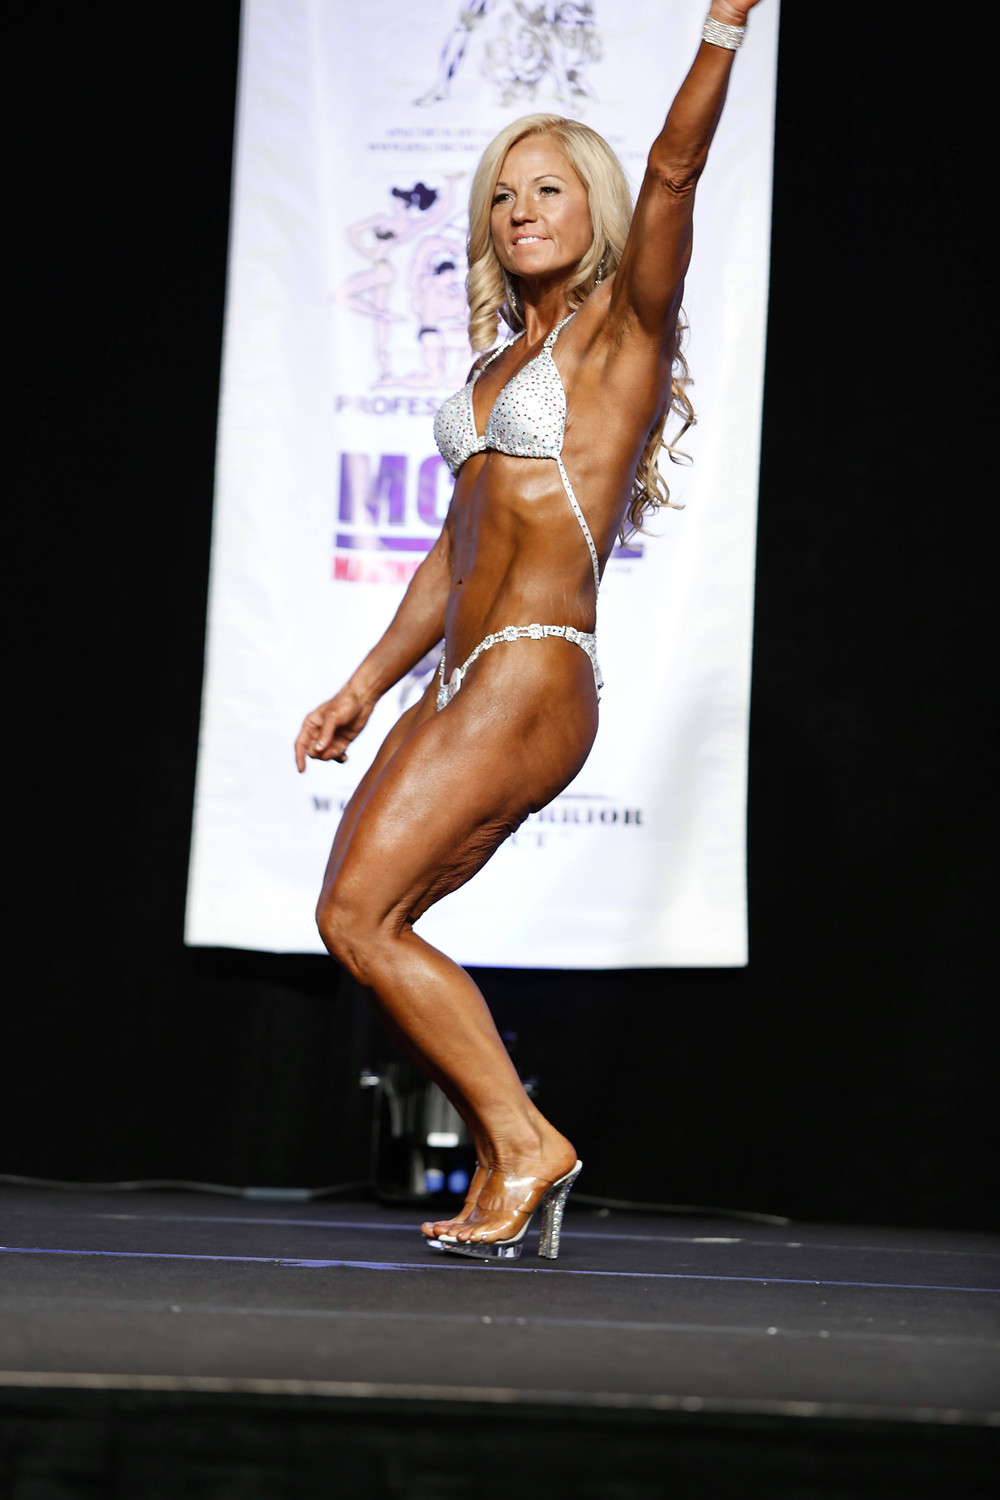 fitness competitor got wrinkles